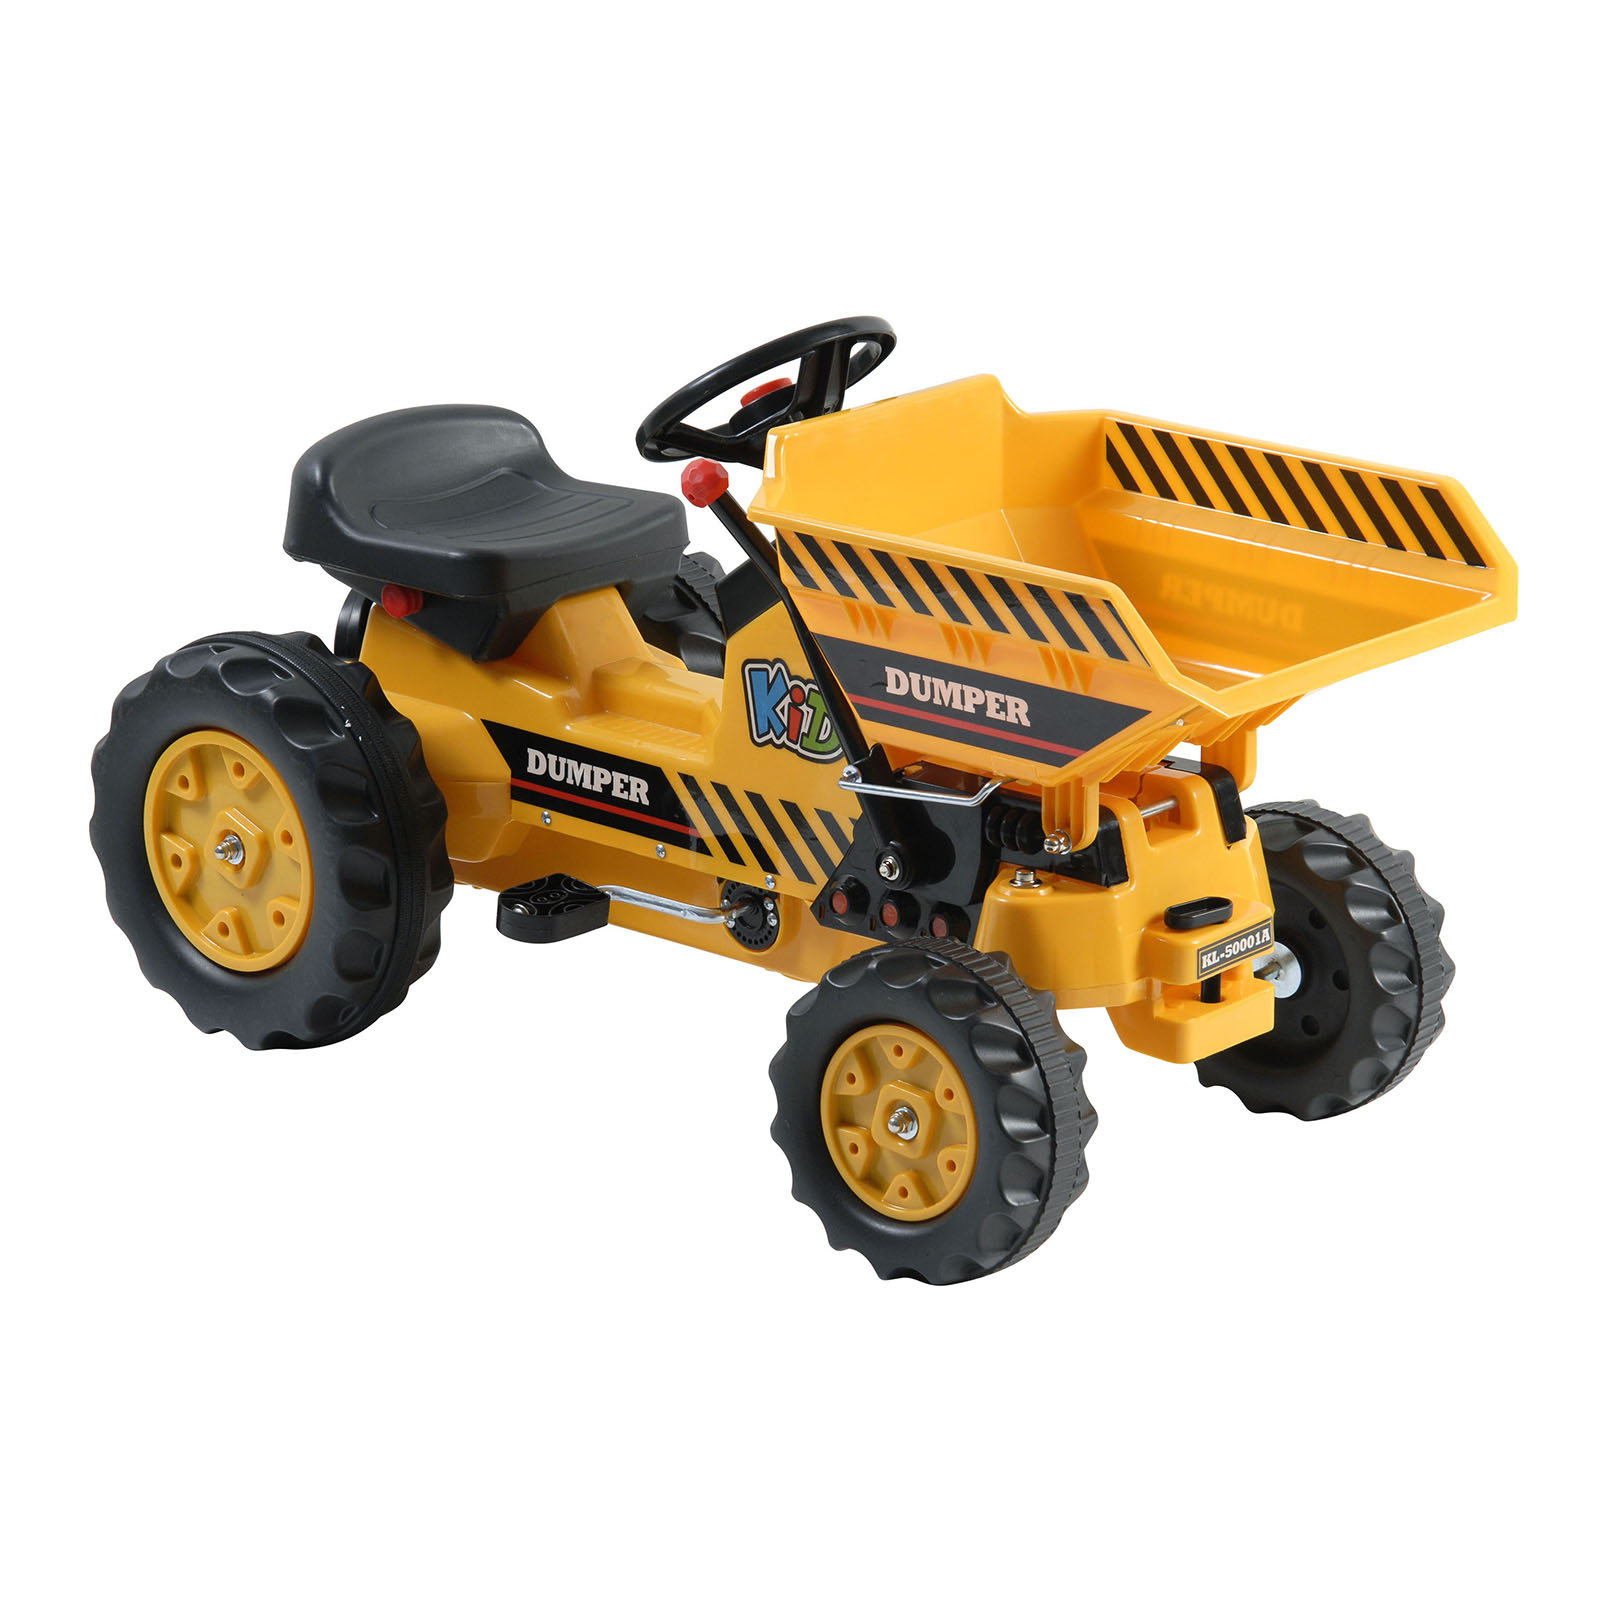 dexton kids tractor with loader pedal riding toy  pedal  push  - dexton kids tractor with loader pedal riding toy  pedal  push riding toysat hayneedle